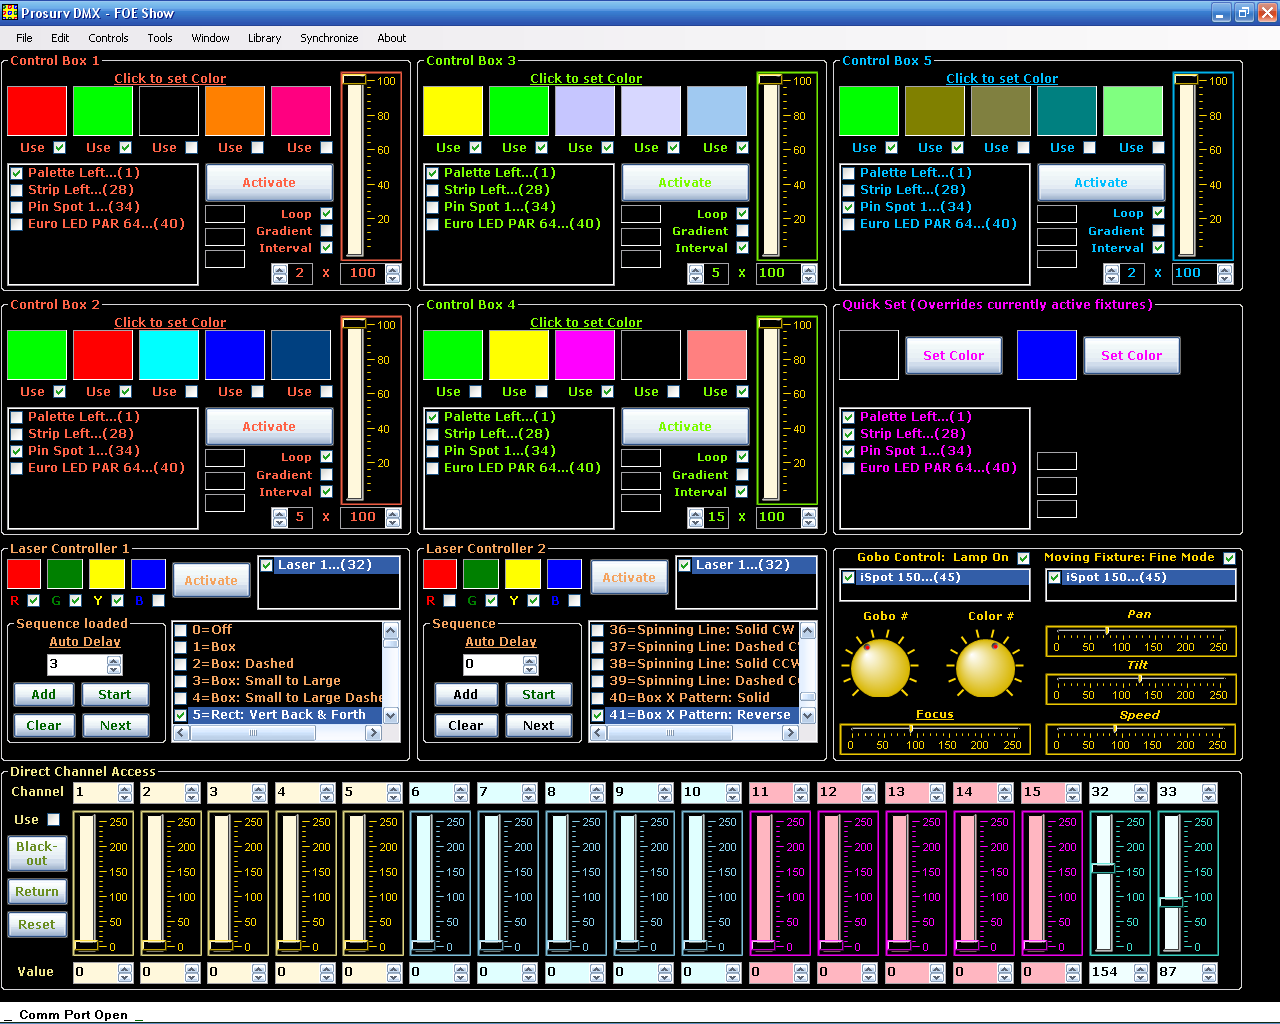 Prosurv DMX - PC Software for lighting control